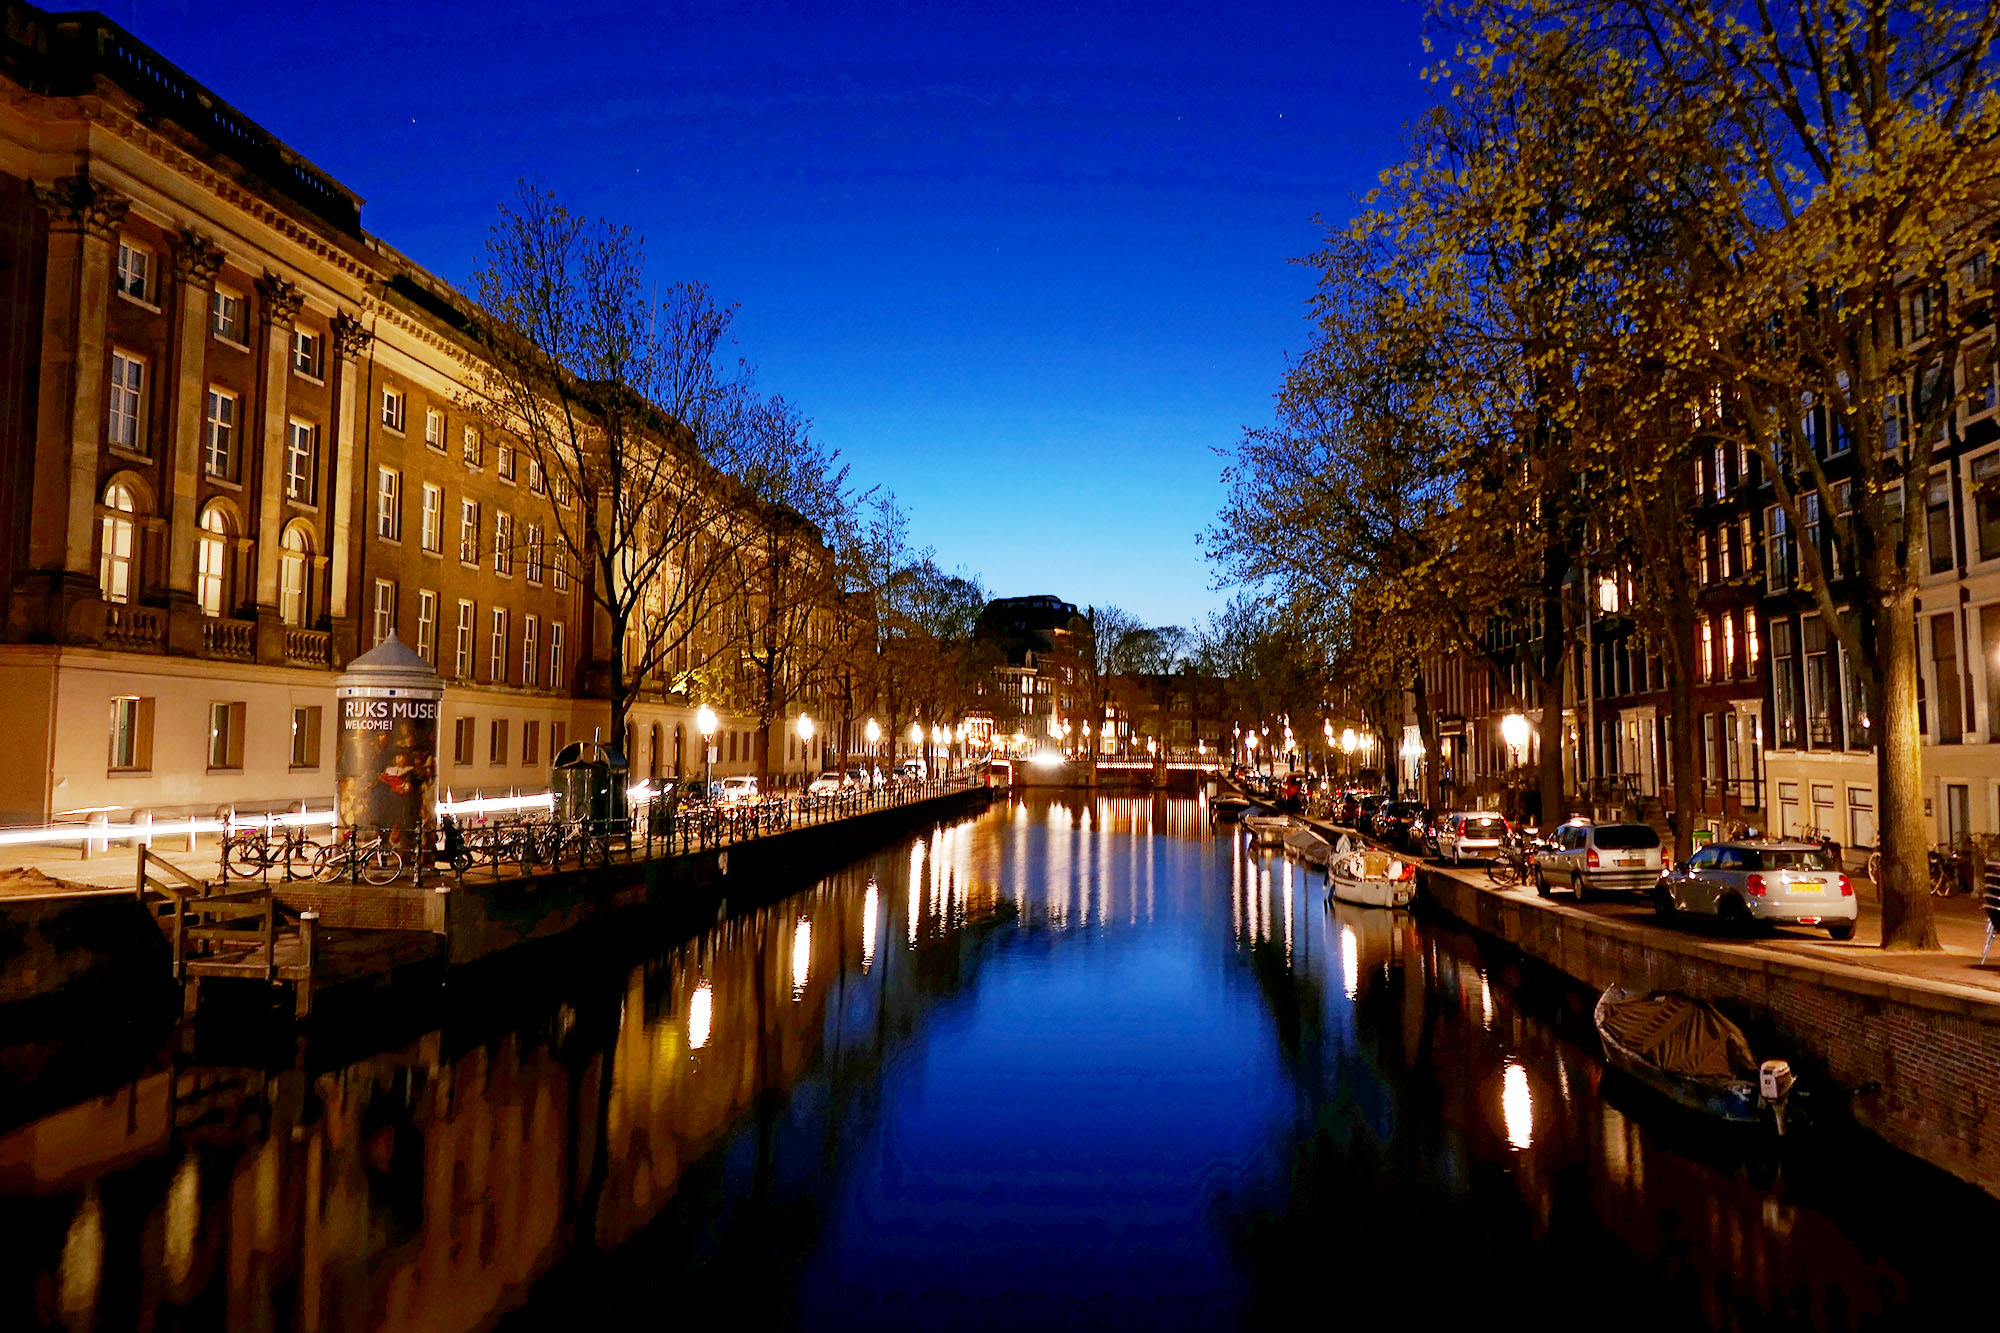 Museum Night Amsterdam 2016 Amsterdam Top 5 Activities In A Dutch Golden Age World